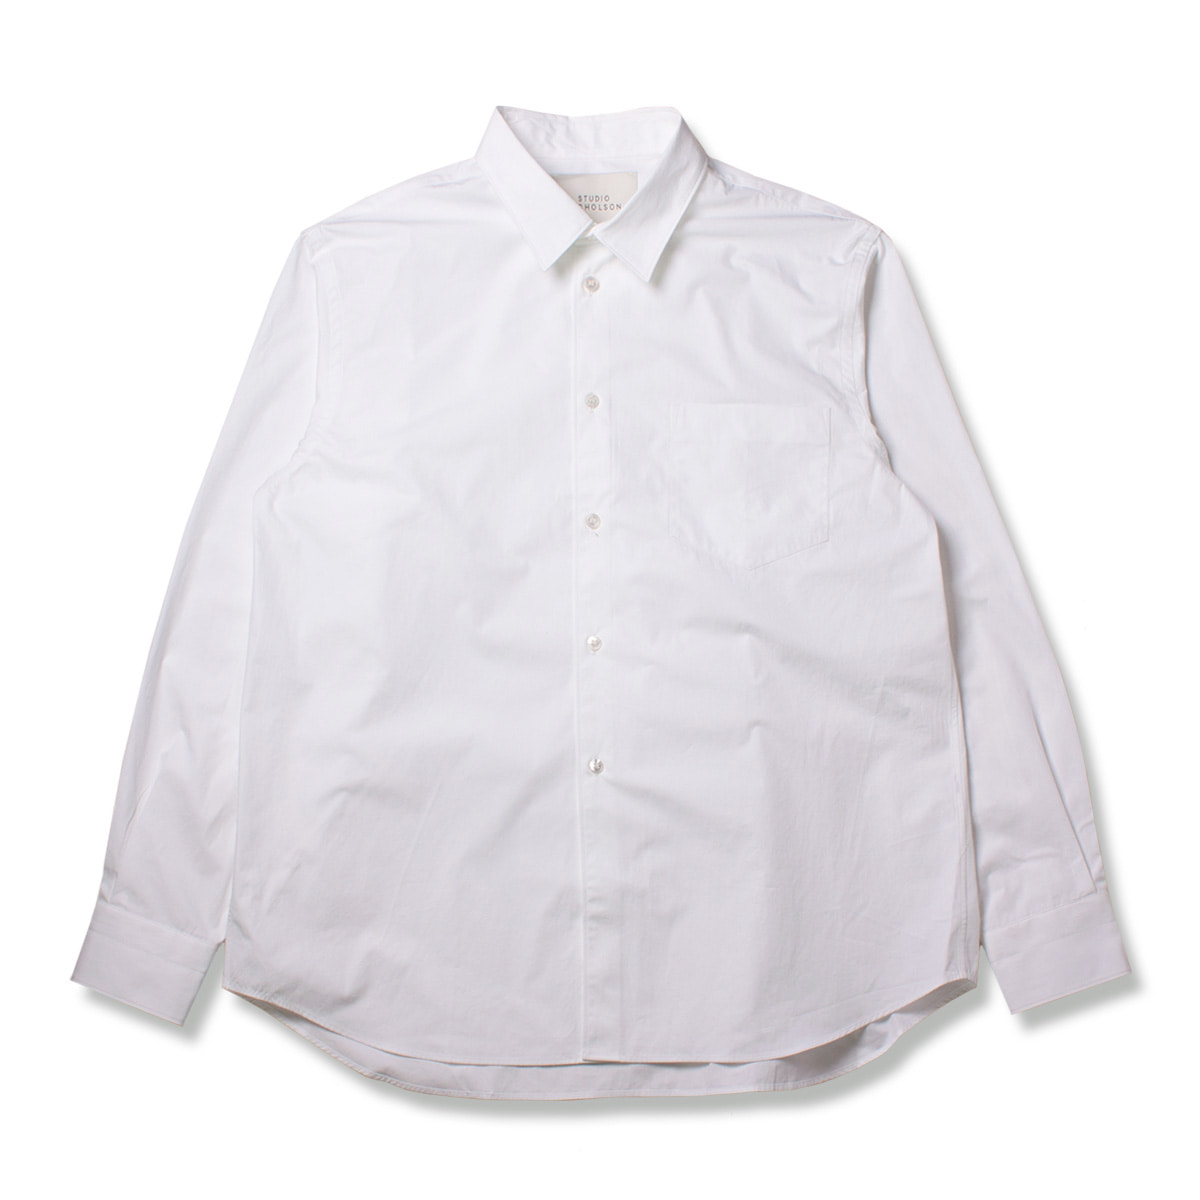 [STUDIO NICHOLSON] SOVERSIZED POINT COLLAR SHIRT 'OPTIC WHITE'